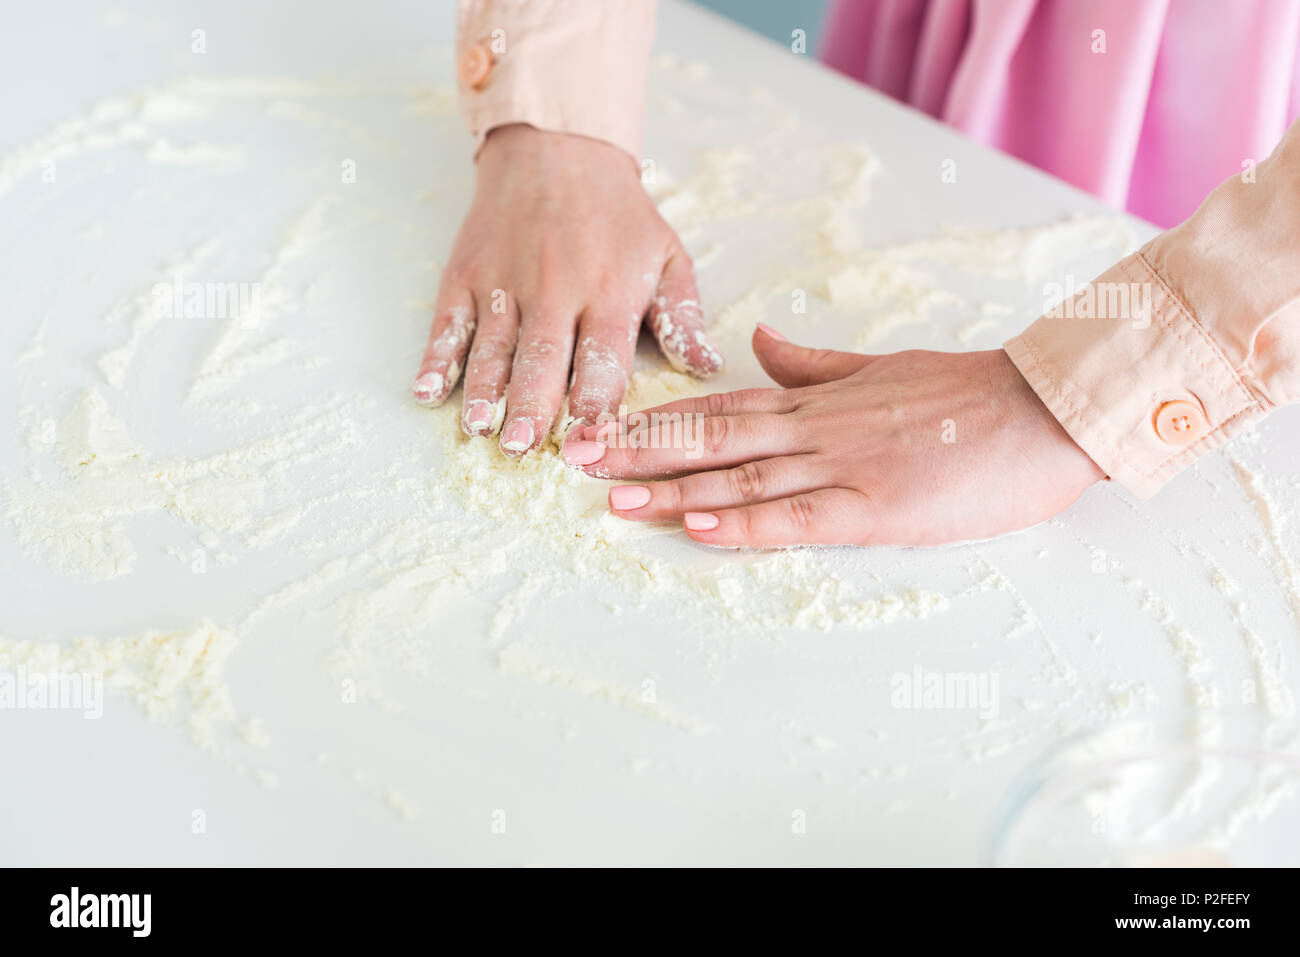 cropped image of woman spreading flour on kitchen counter - Stock Image